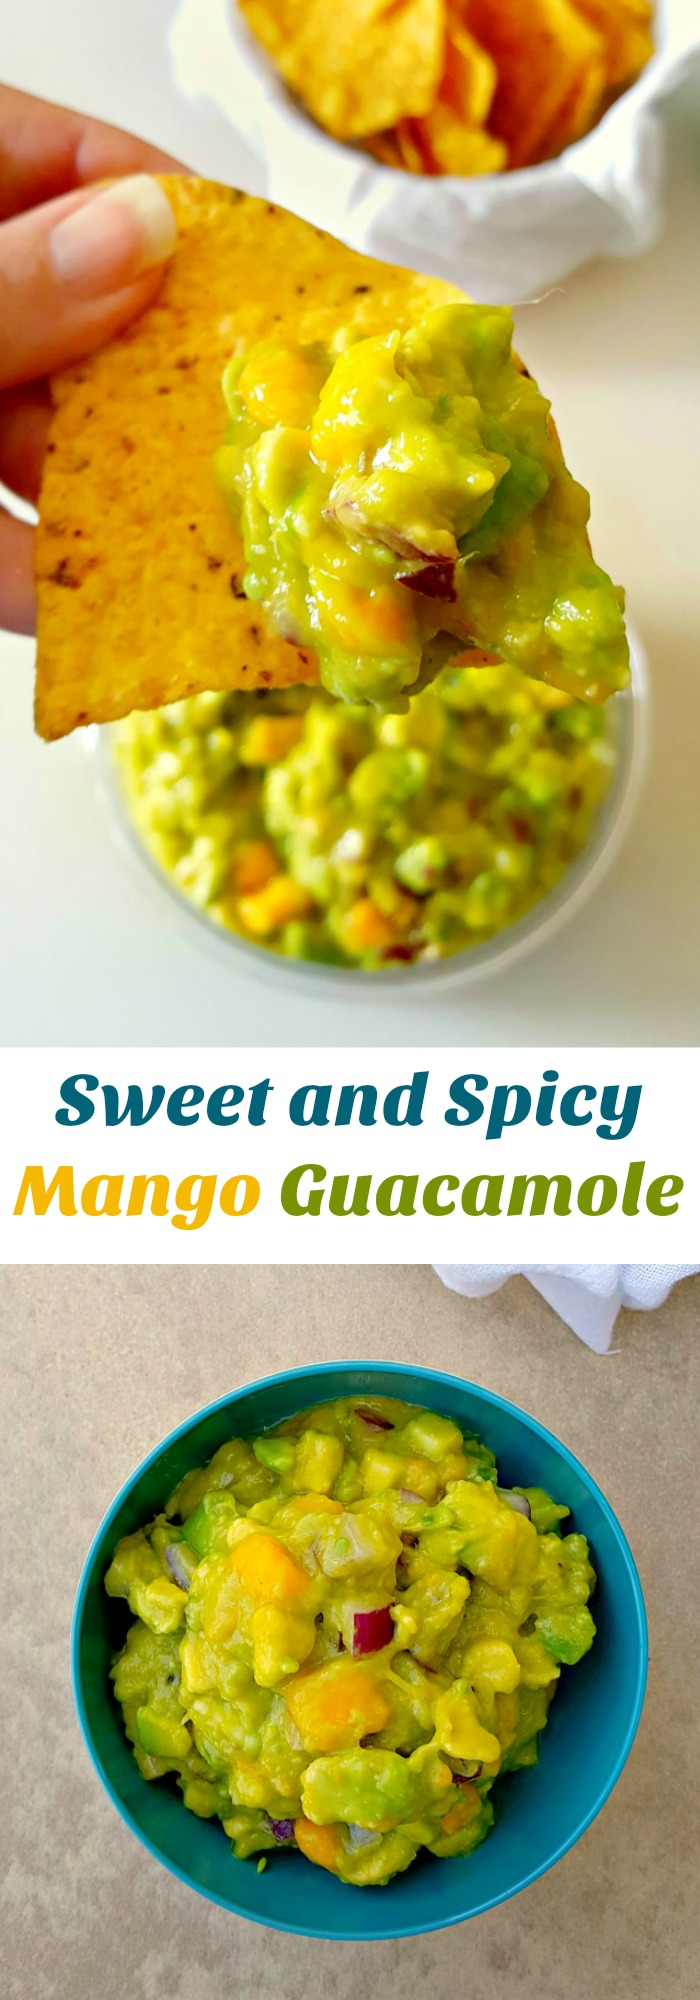 Creamy avocado, sweet mango, and spicy jalapeno make this Sweet and Spicy Mango Guacamole irresistable